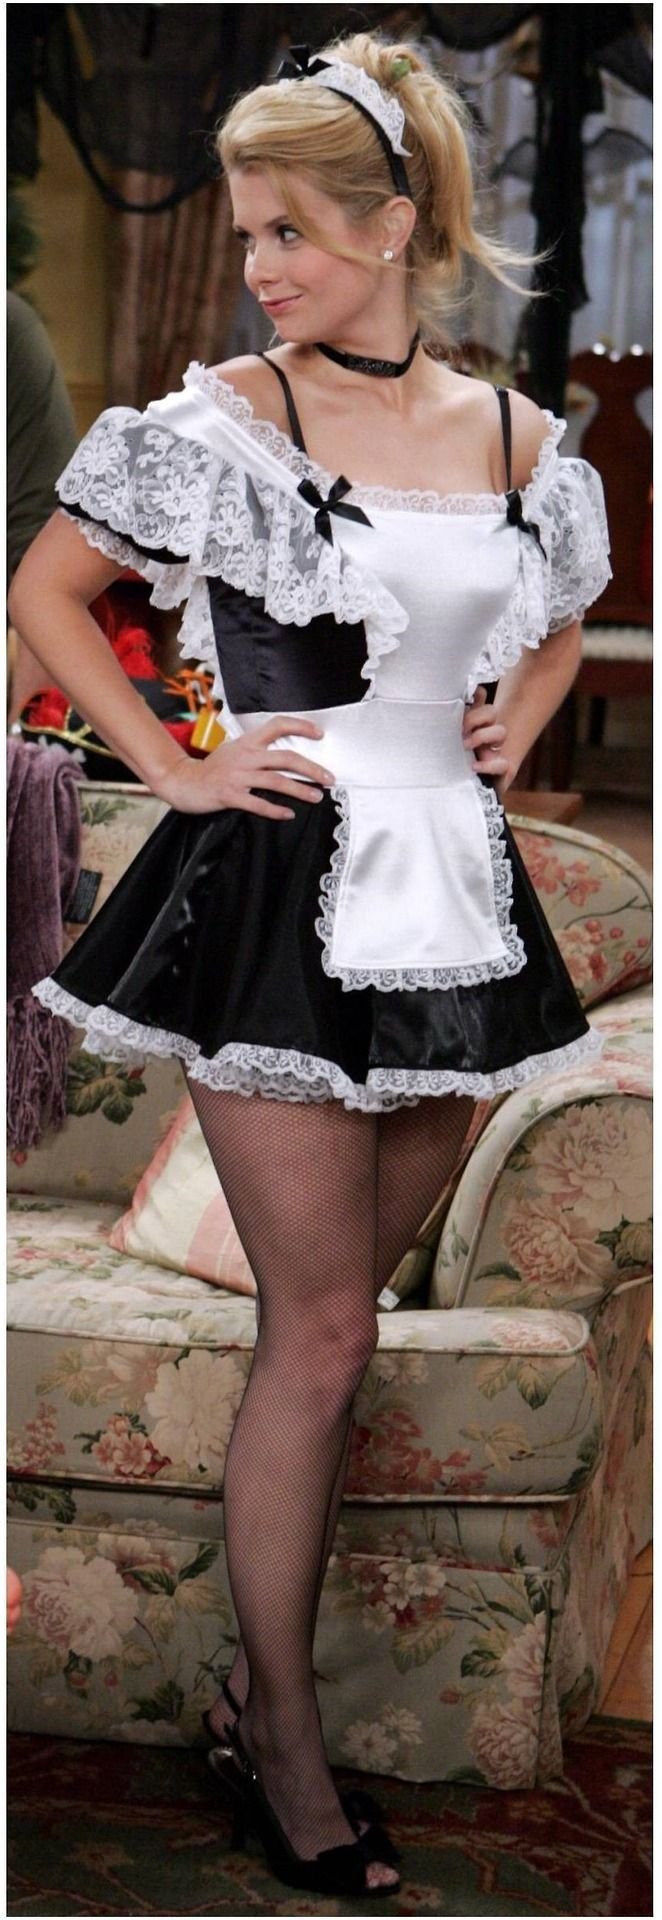 Yes, I know this is a Halloween costume honey, but we're always talking about hiring a maid. You don't seem to mind my looking like this and I'm not about to complain. I can? Promise? I'll be the best maid ever!